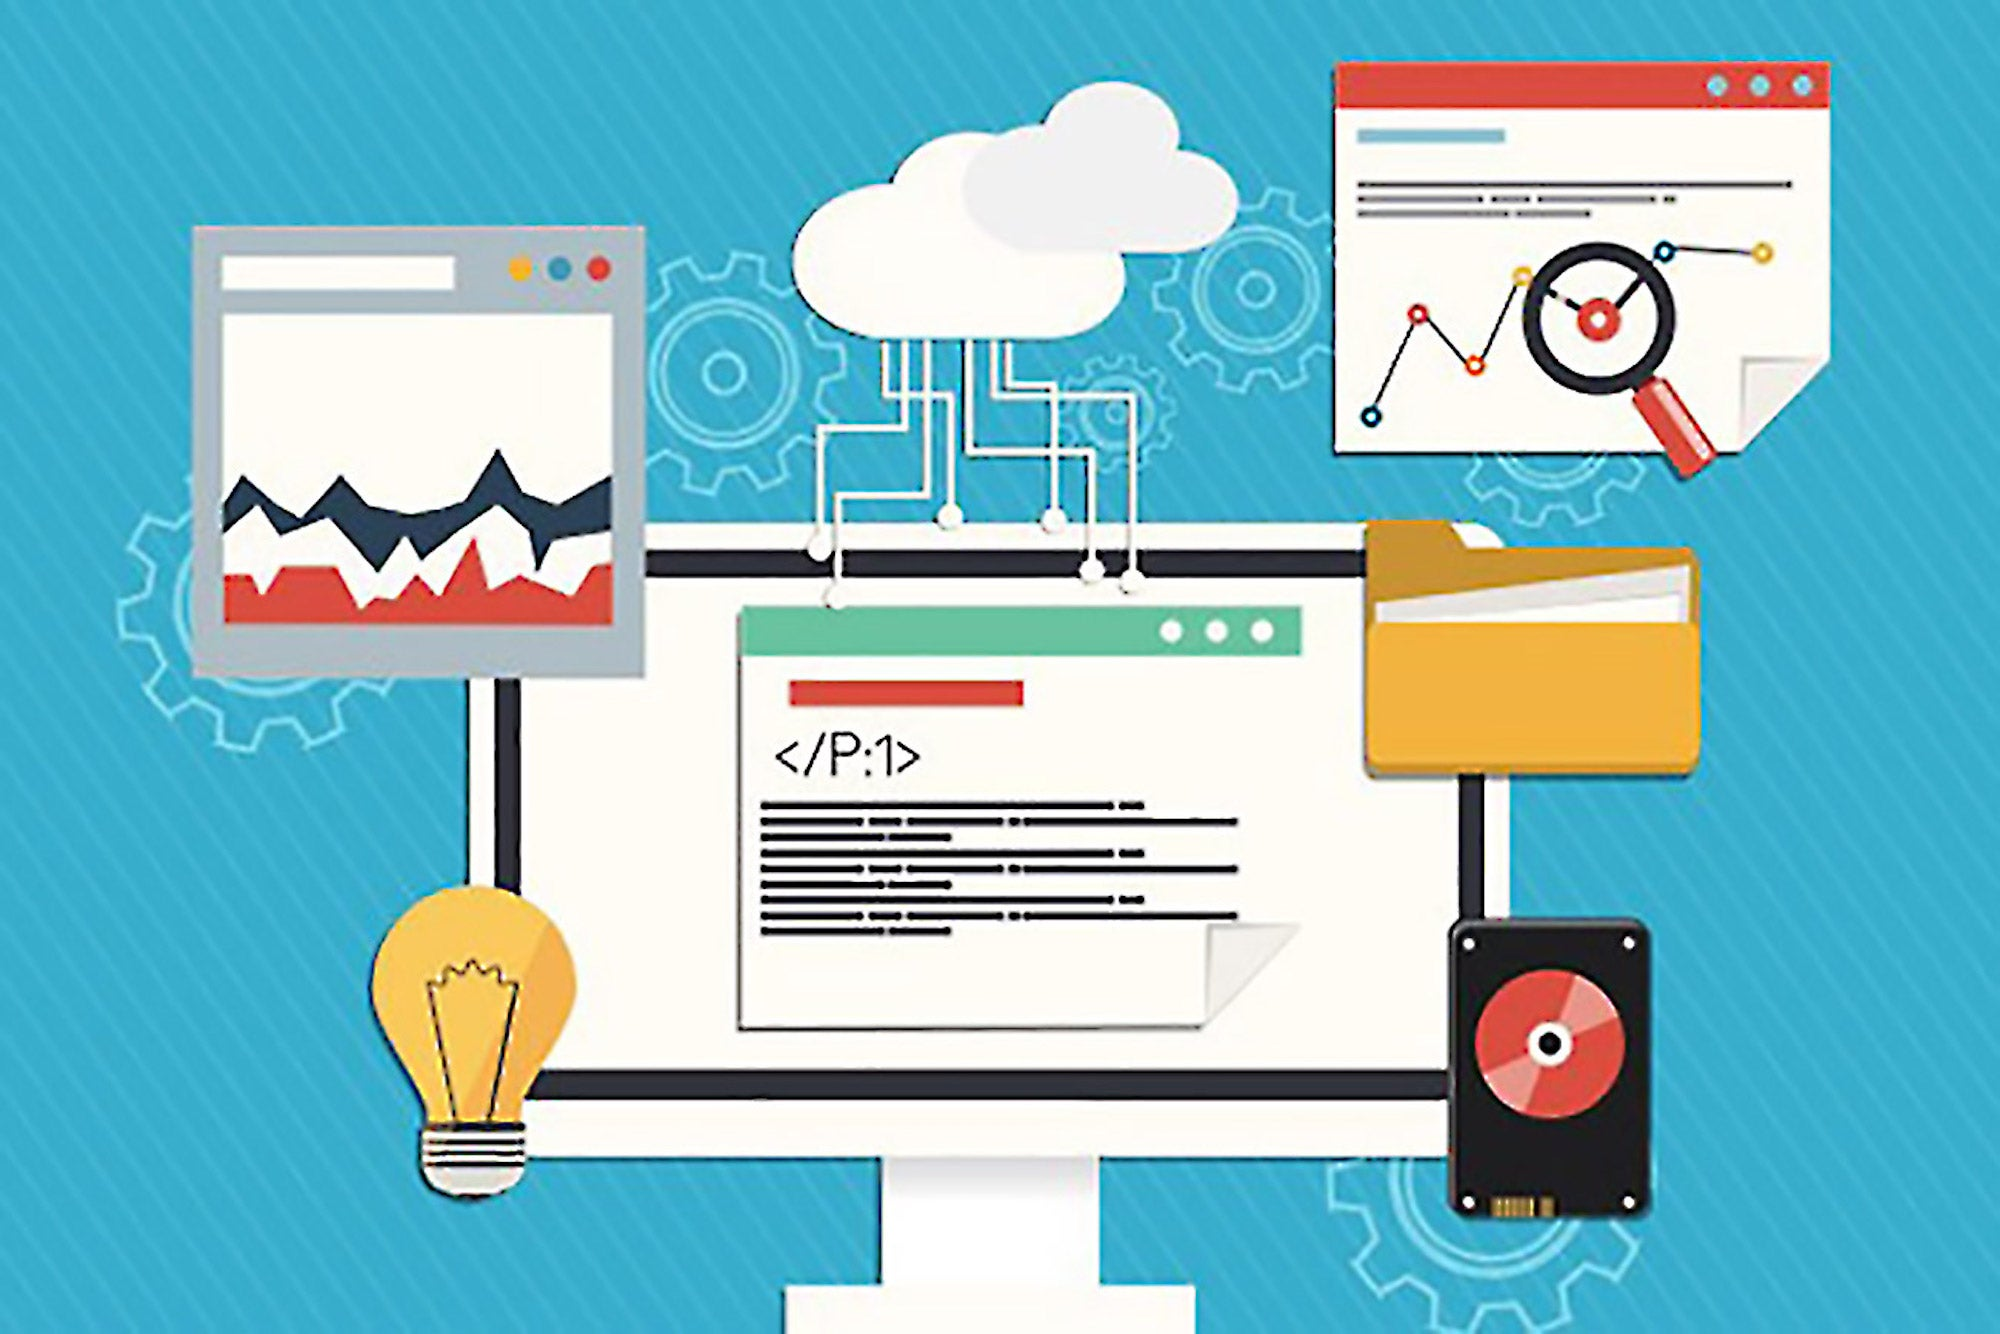 [Start-it-up] How To Become a Freelance Web Developer